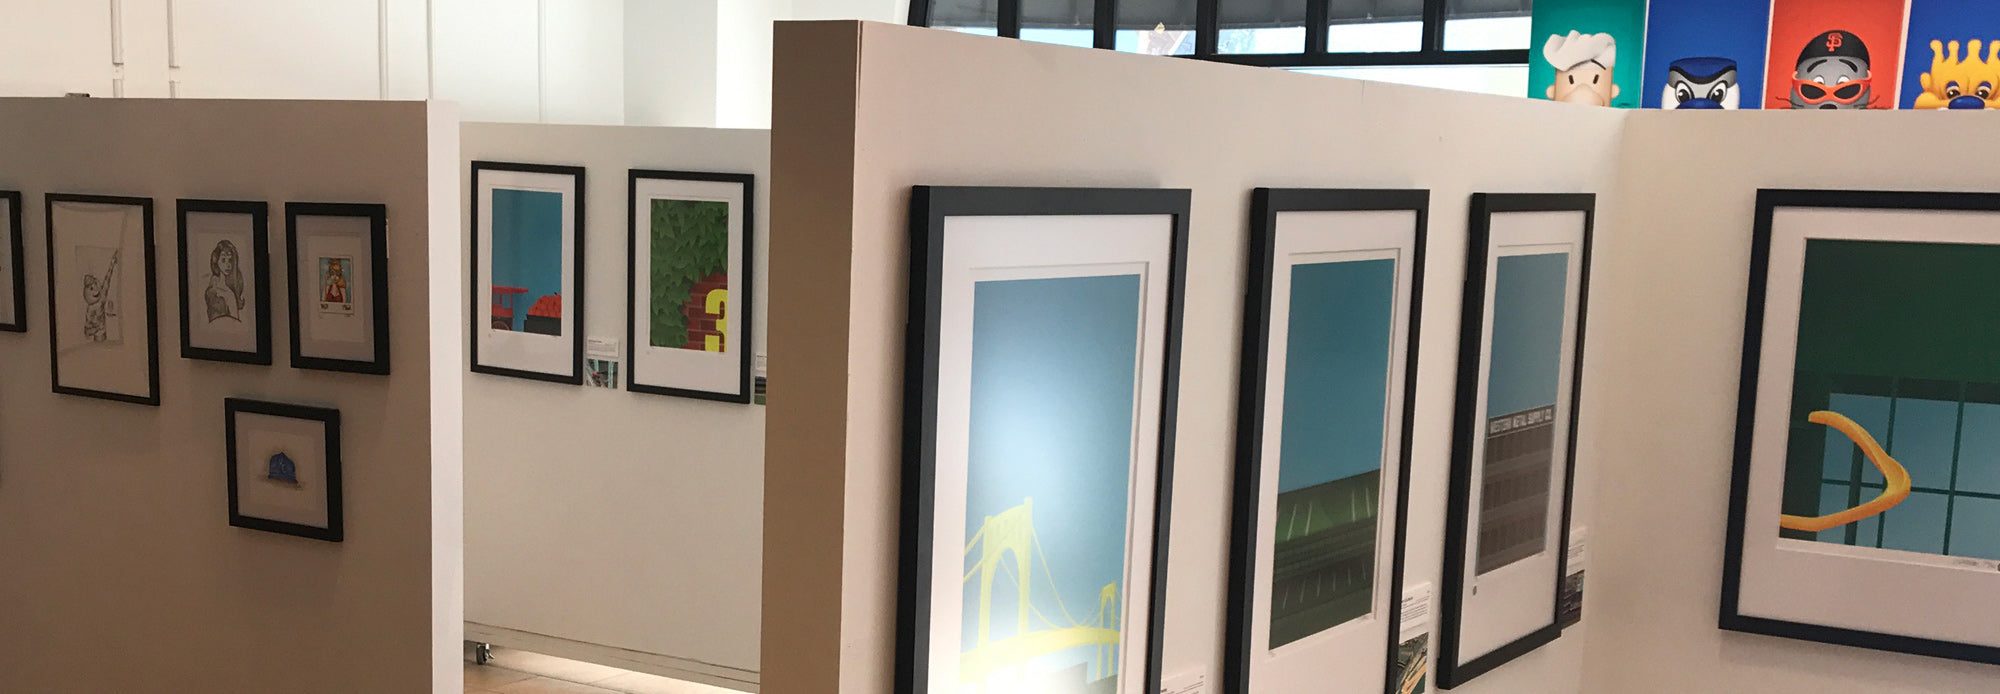 The S. Preston Art + Designs Gallery Opened In September 2017. The Gallery  Features His Minimalist Baseball Art Collection Which Include His  Minimalist ...